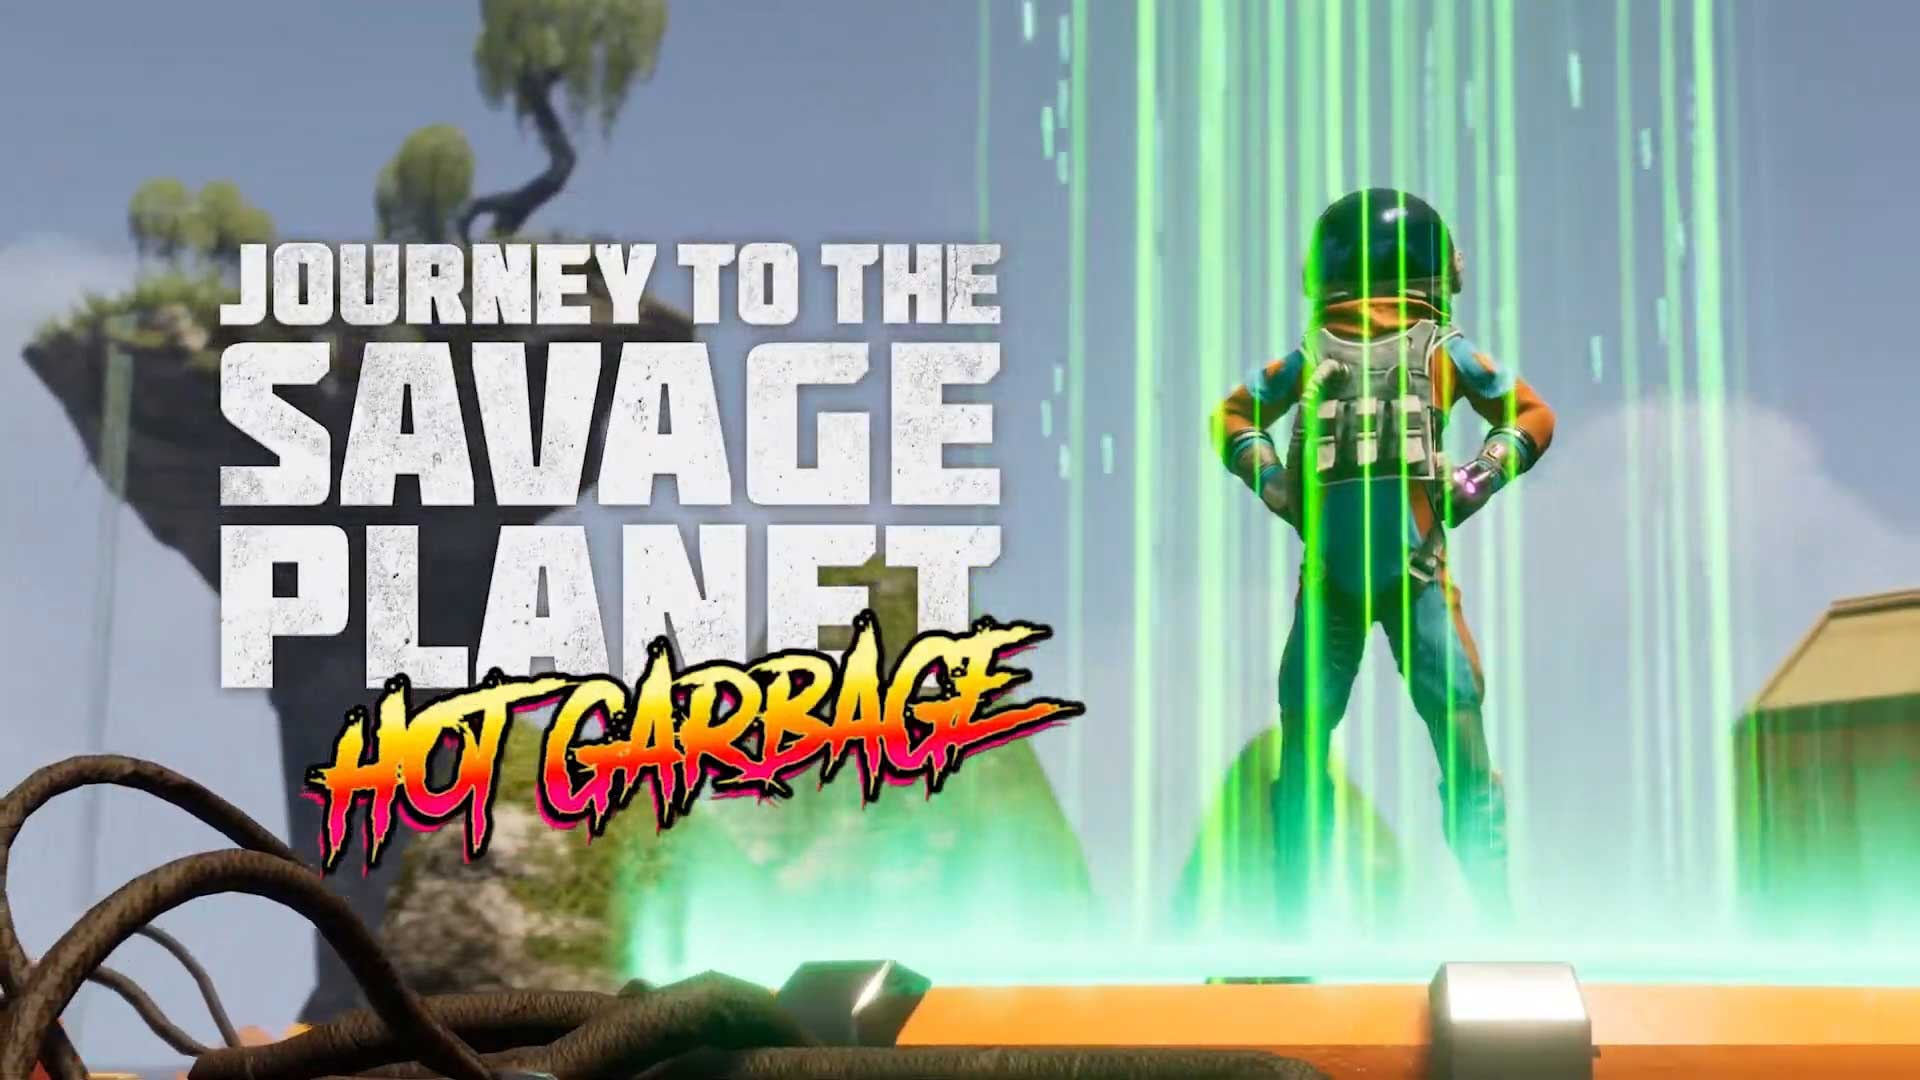 Journey to the Savage Planet – Hot Garbage